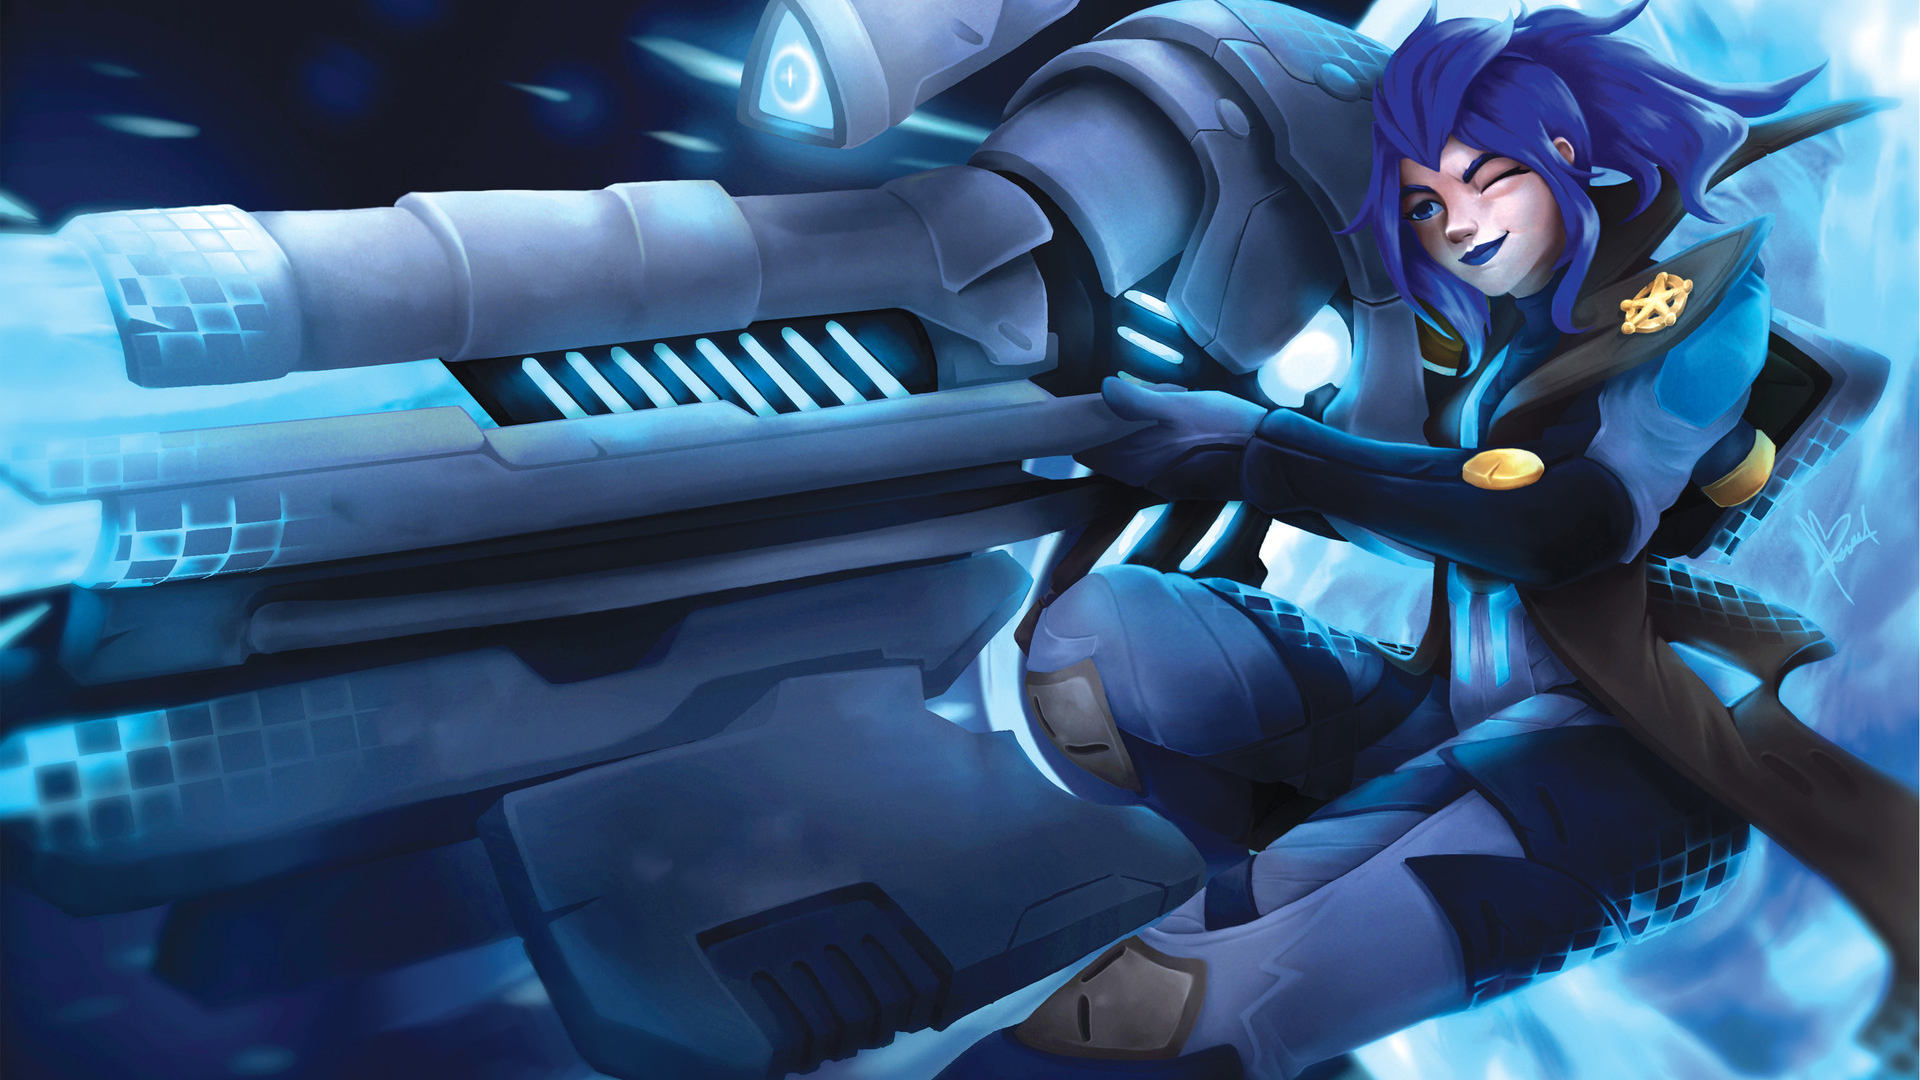 Free Download Pulsefire Caitlyn Lol Wallpapers 1920x1357 For